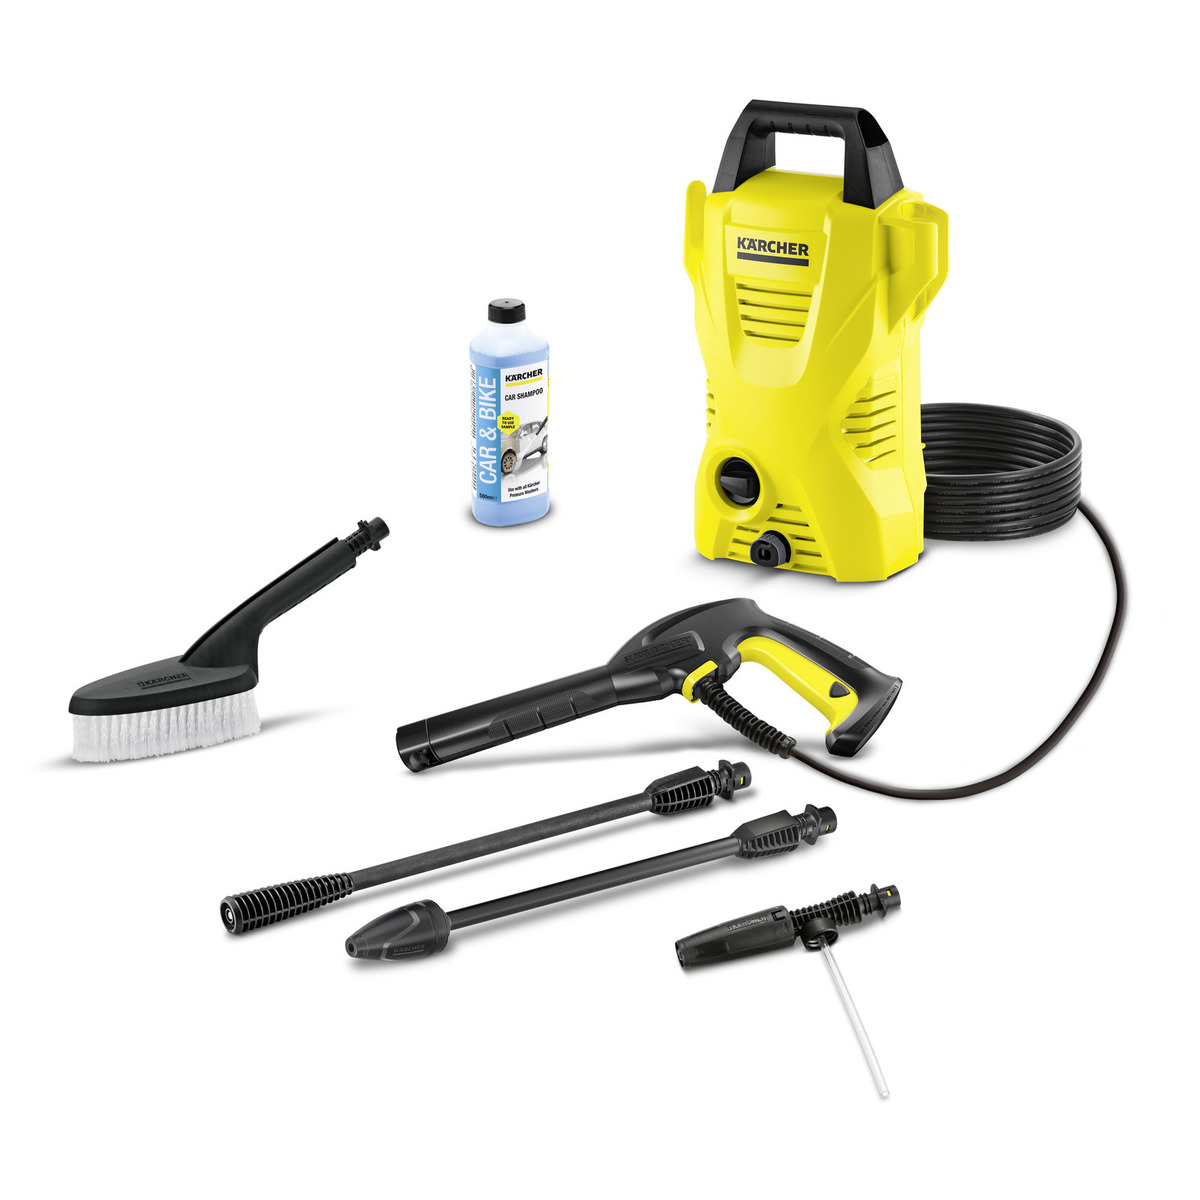 Karcher K2 Compact Car High Pressure Washer